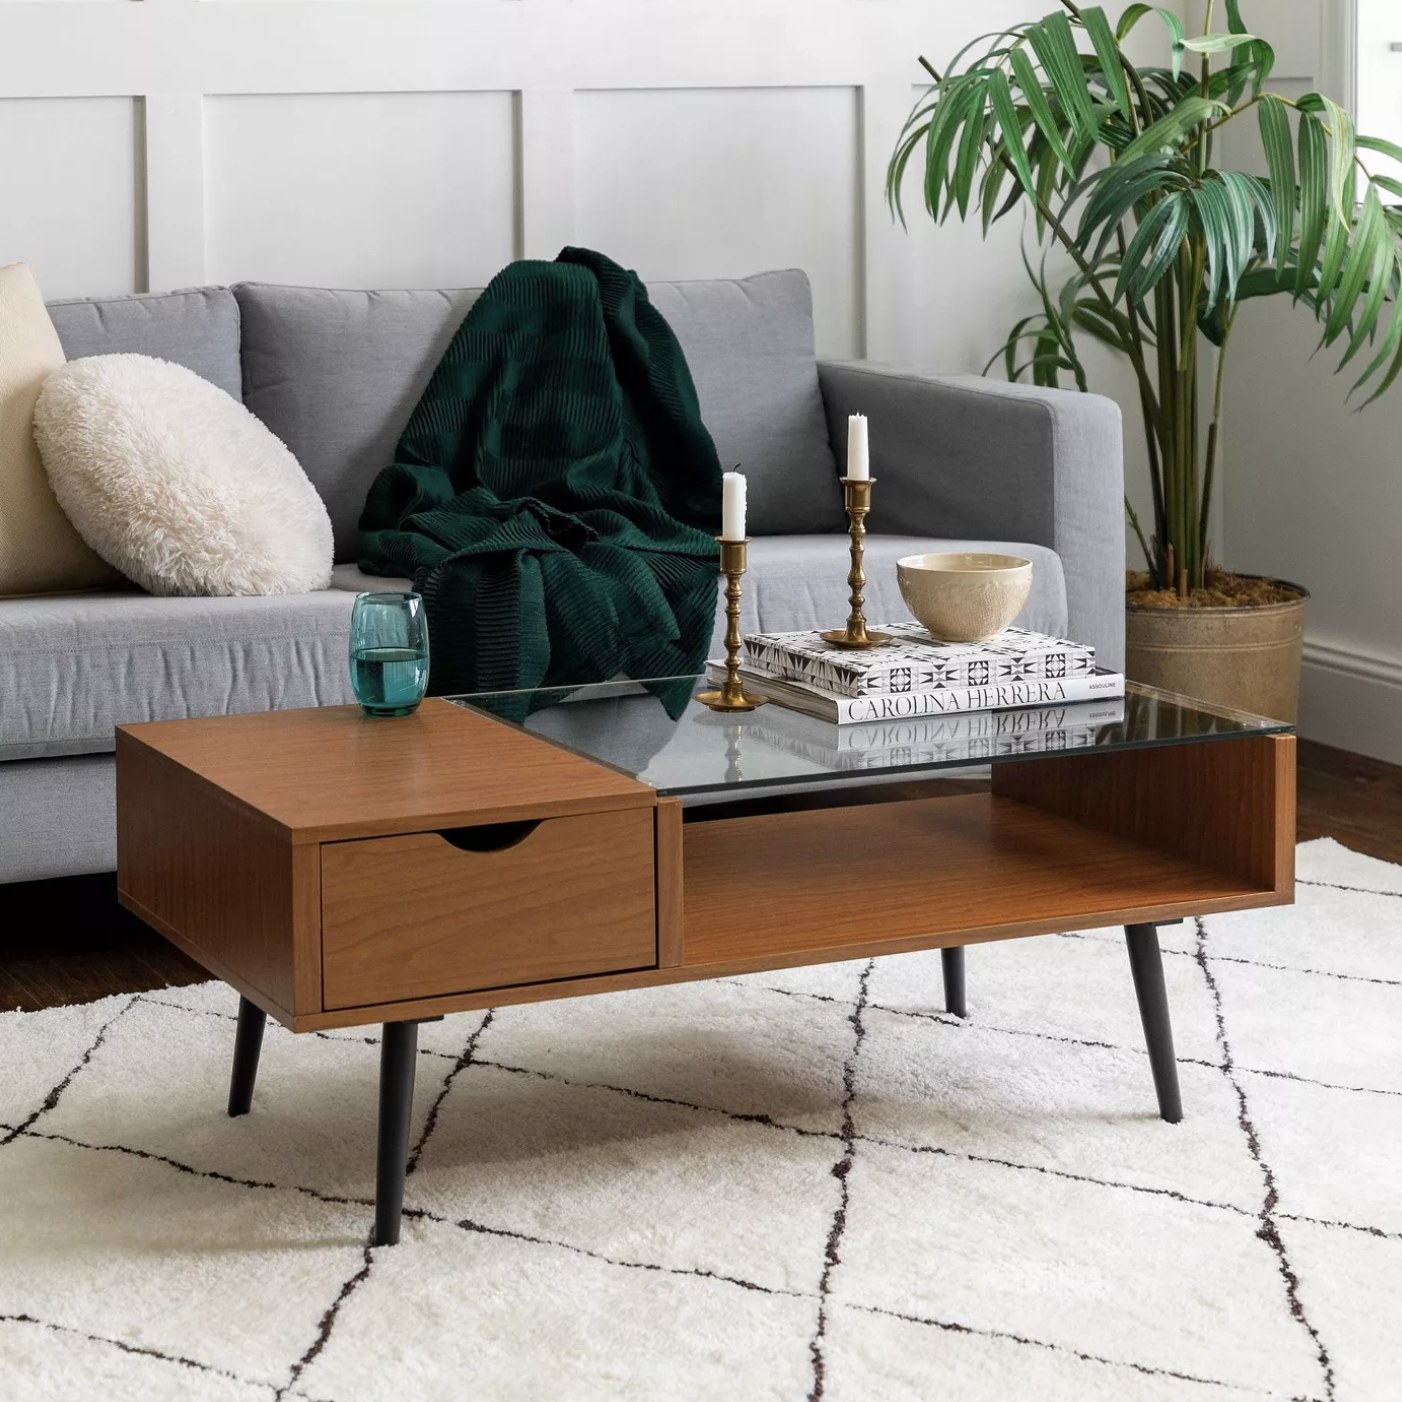 The glass and wood coffee table in front of a couch